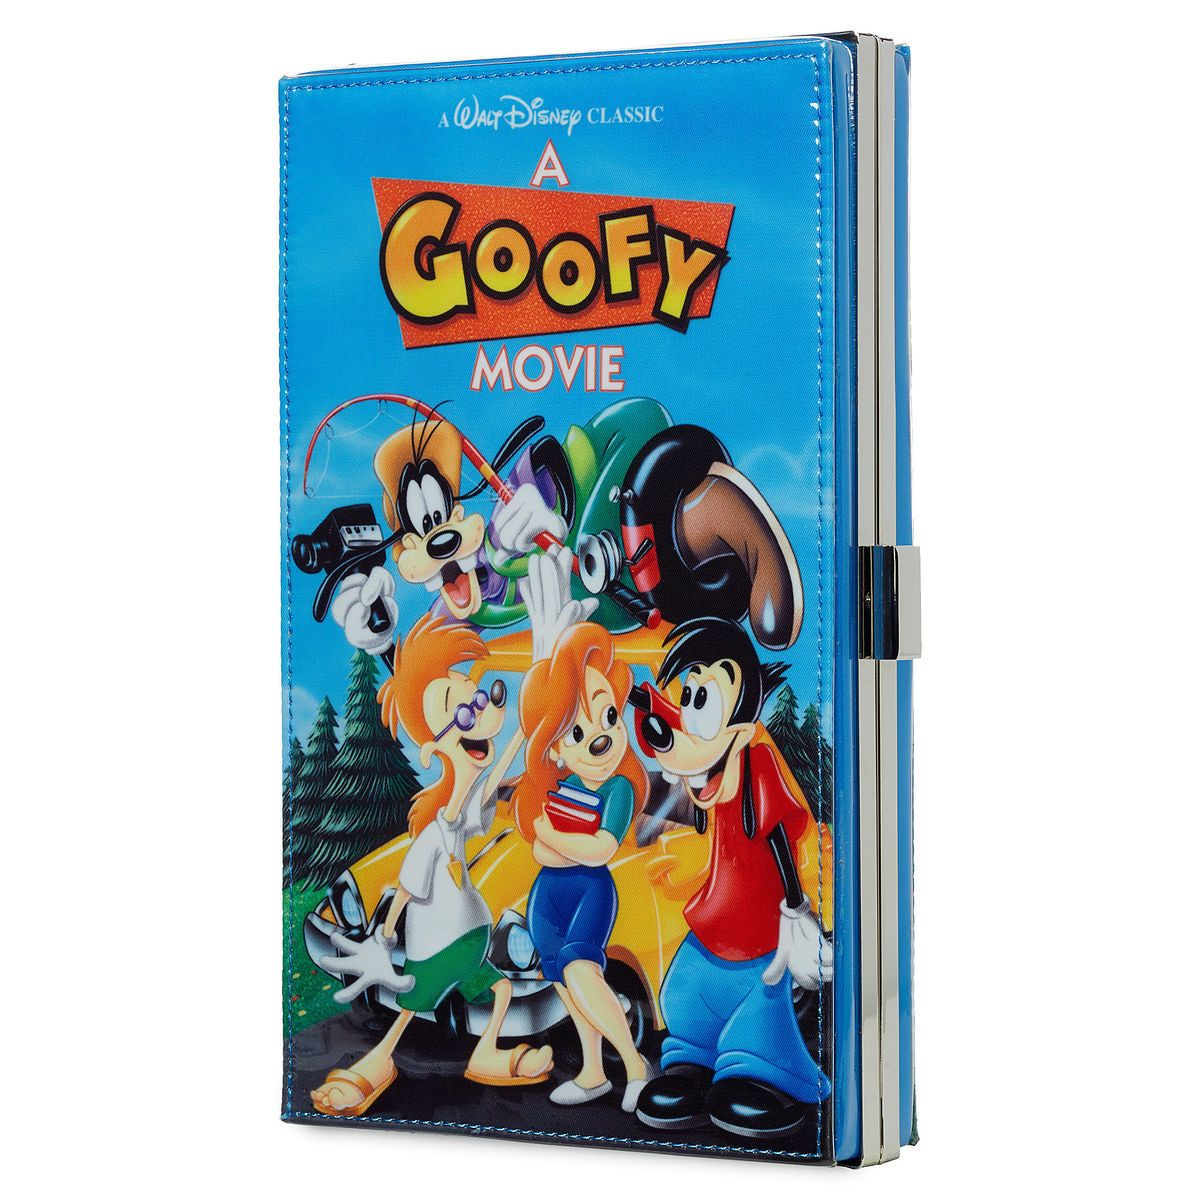 Product Image Of A Goofy Movie Vhs Case Clutch Bag